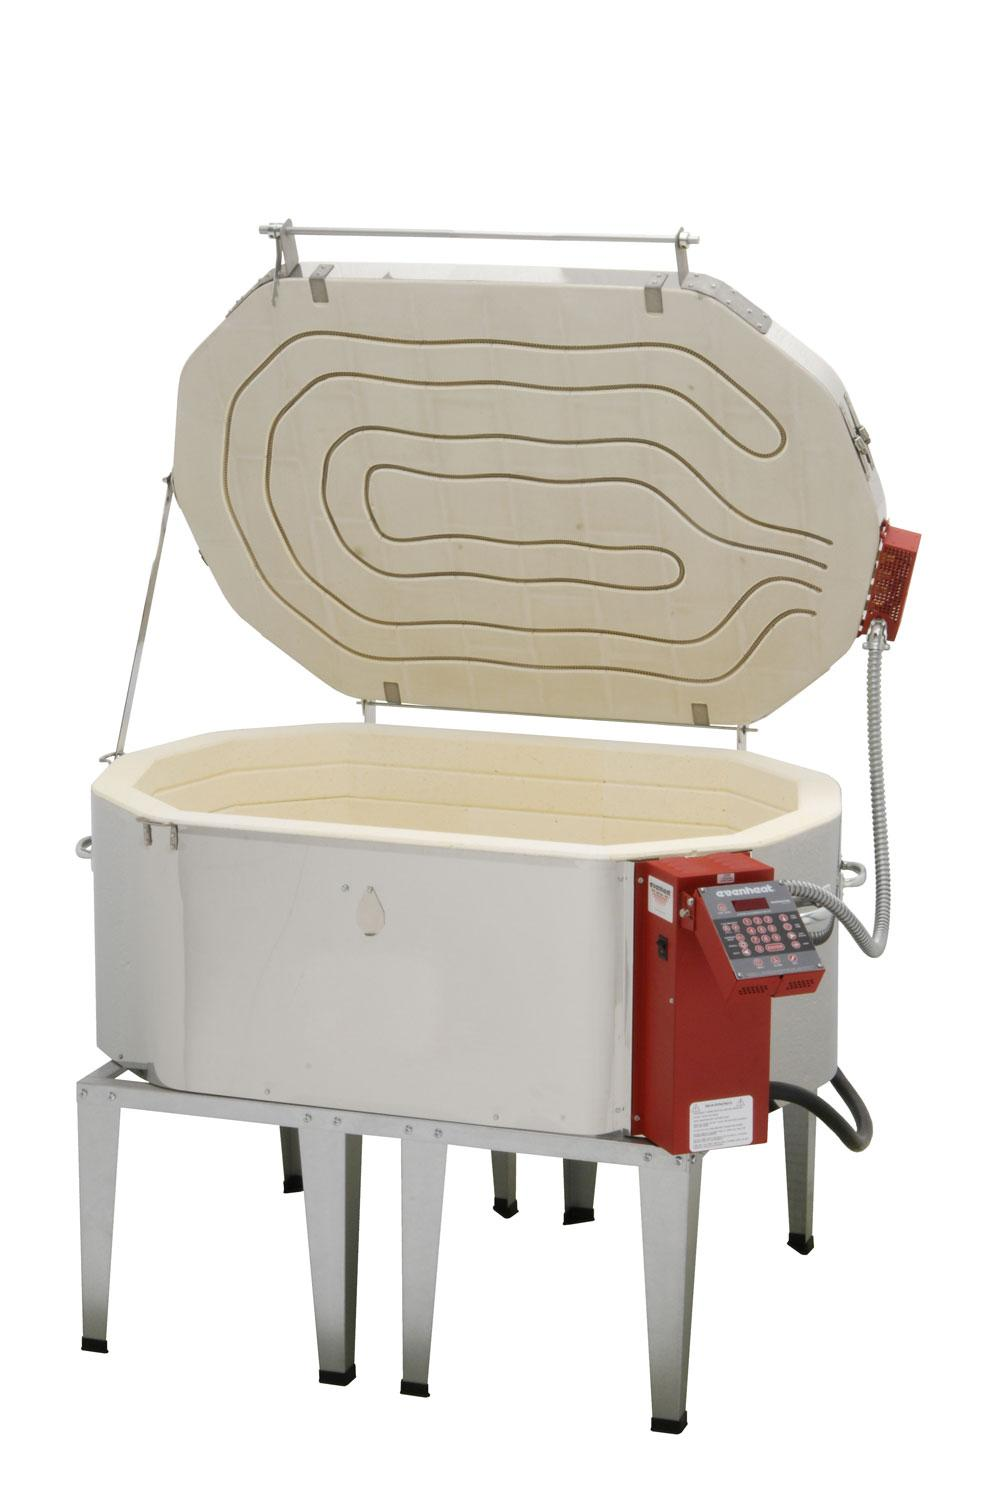 GTS 2541-13 25 Floor Kiln with RampMaster with Express Mode and Furniture Kit